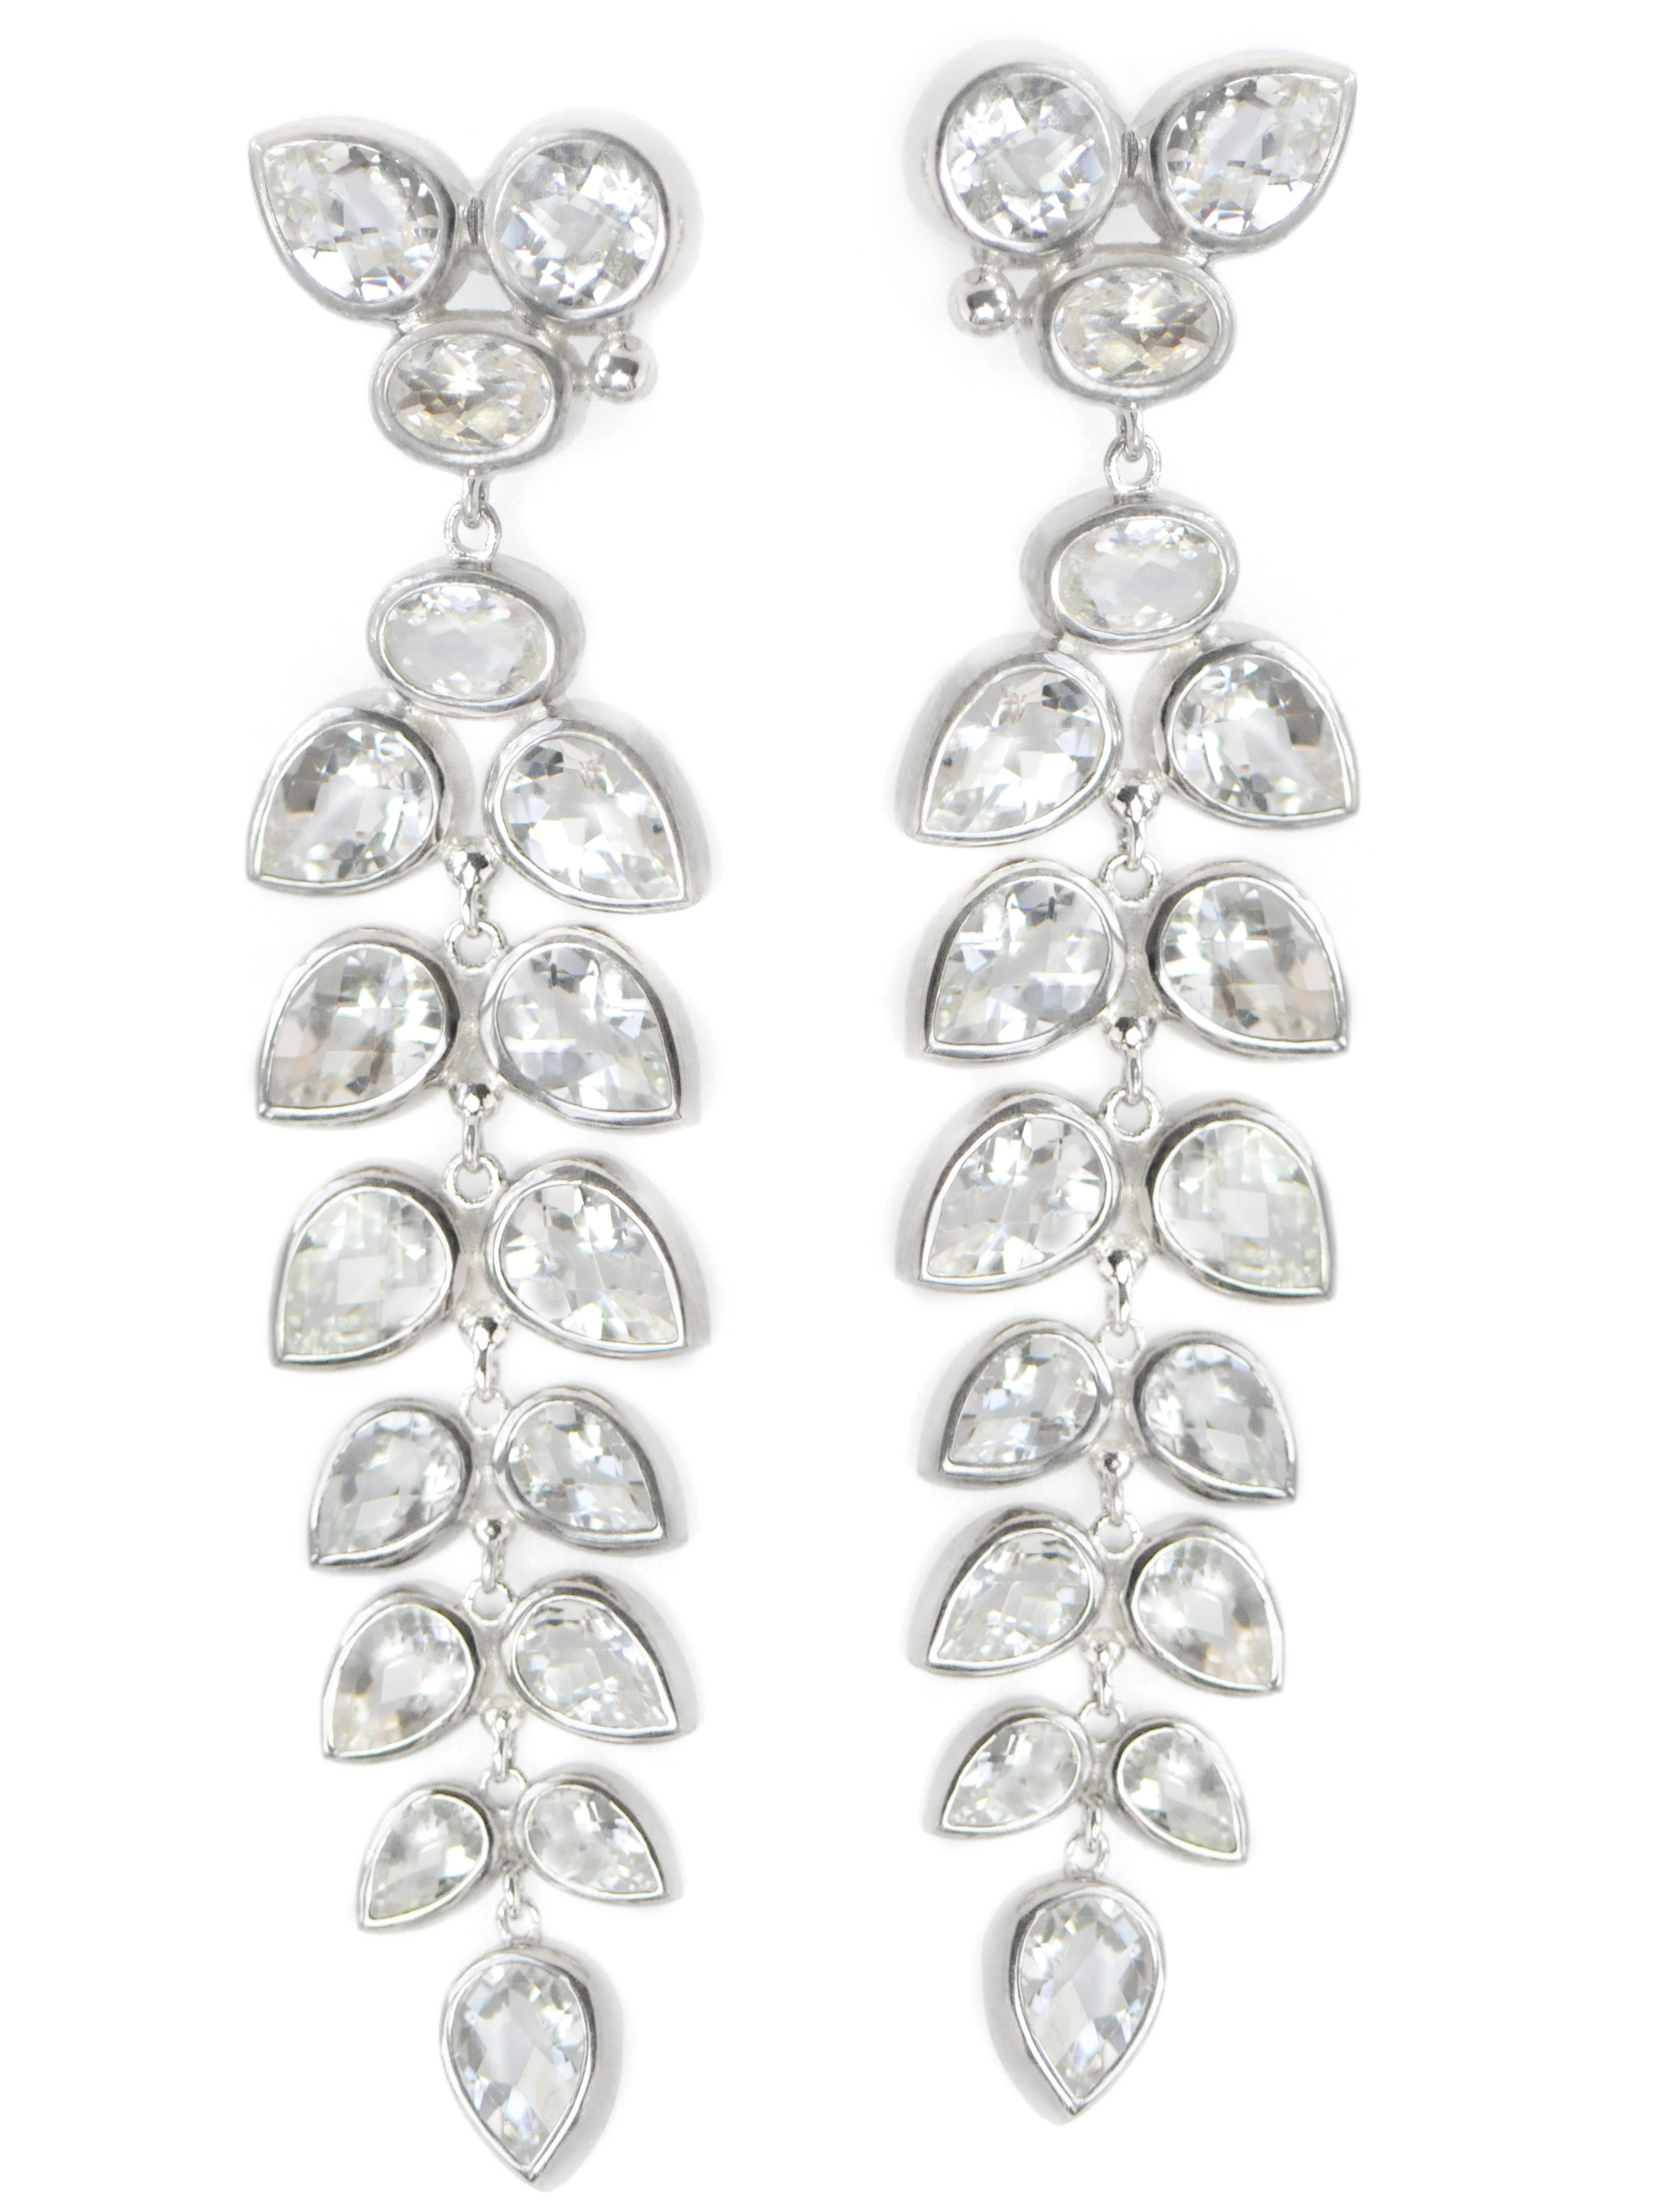 Anzie Jewelry Bouquet leaf earrings | JCK On Your Market